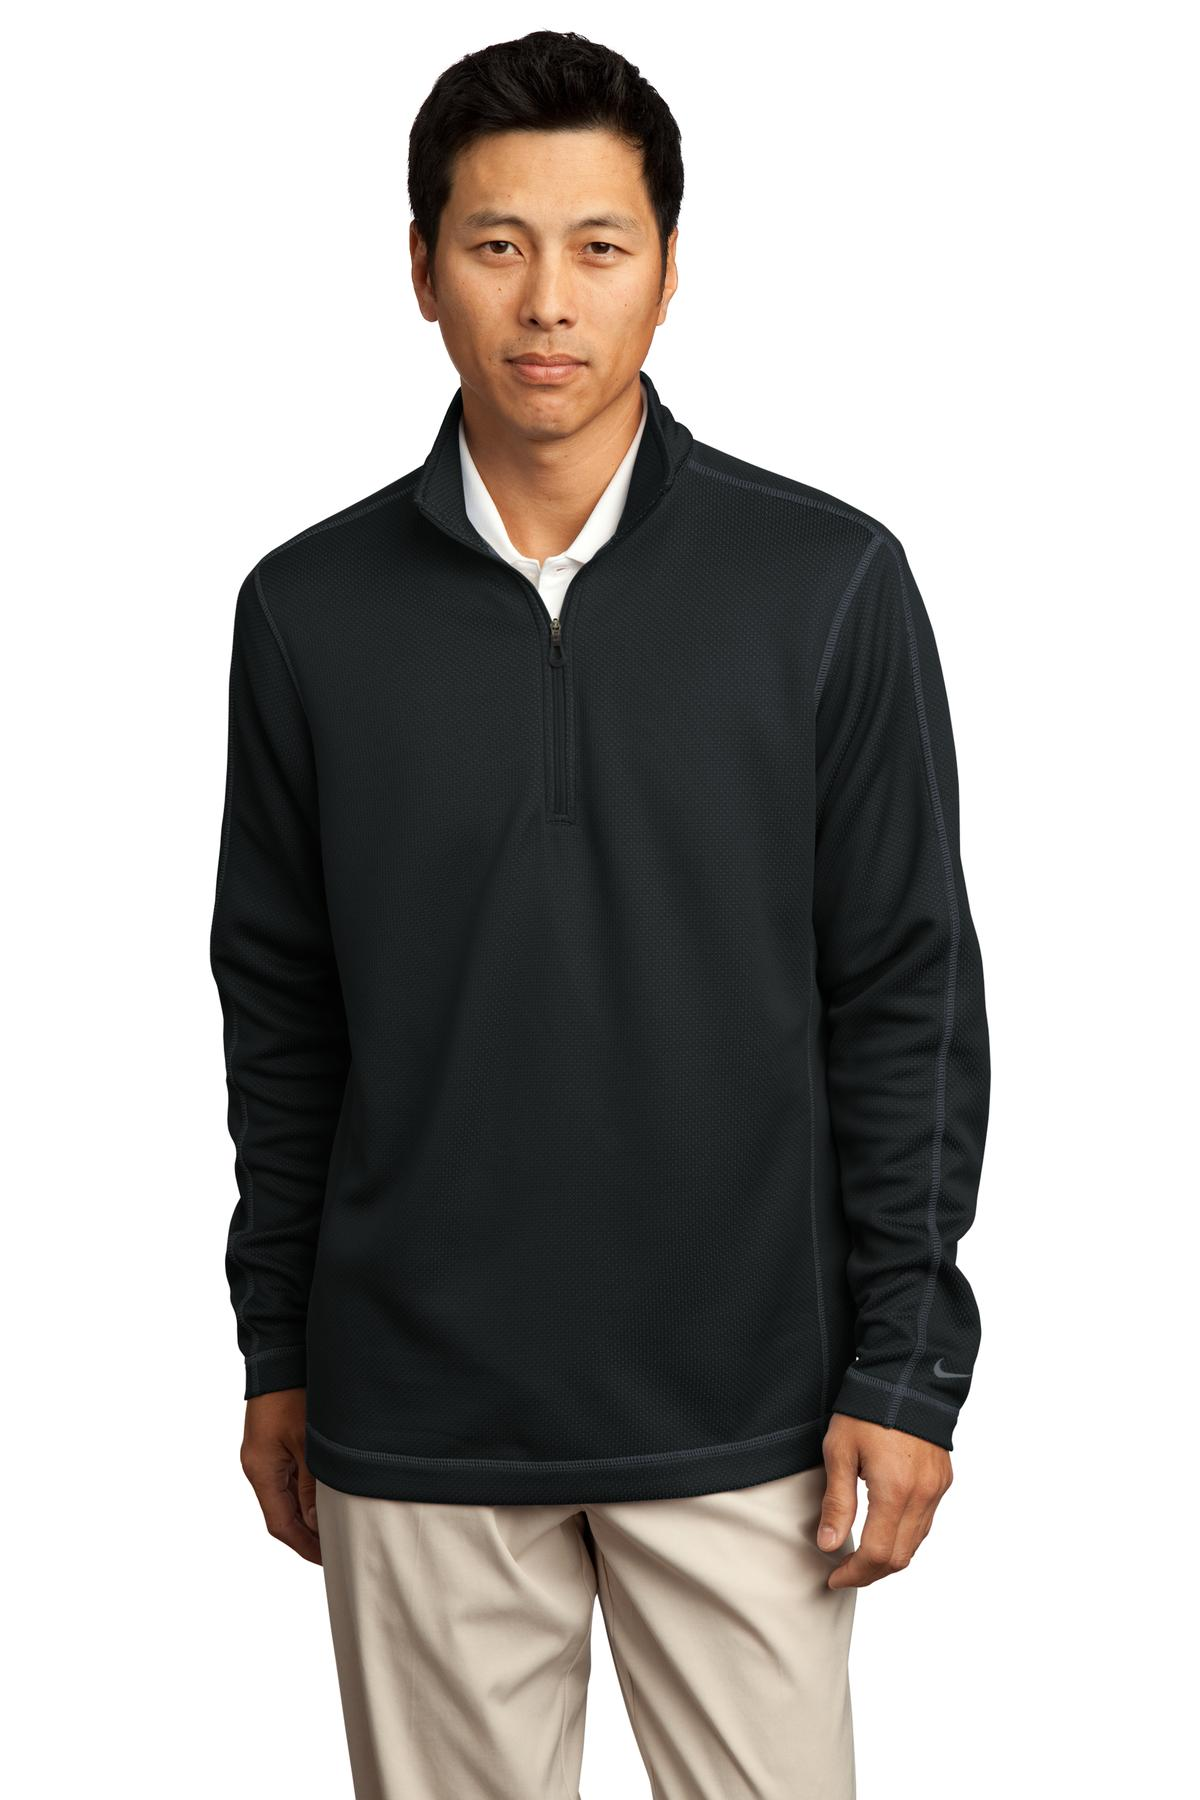 Nike Sphere Dry Cover-Up.  244610 - Black/ Anthracite